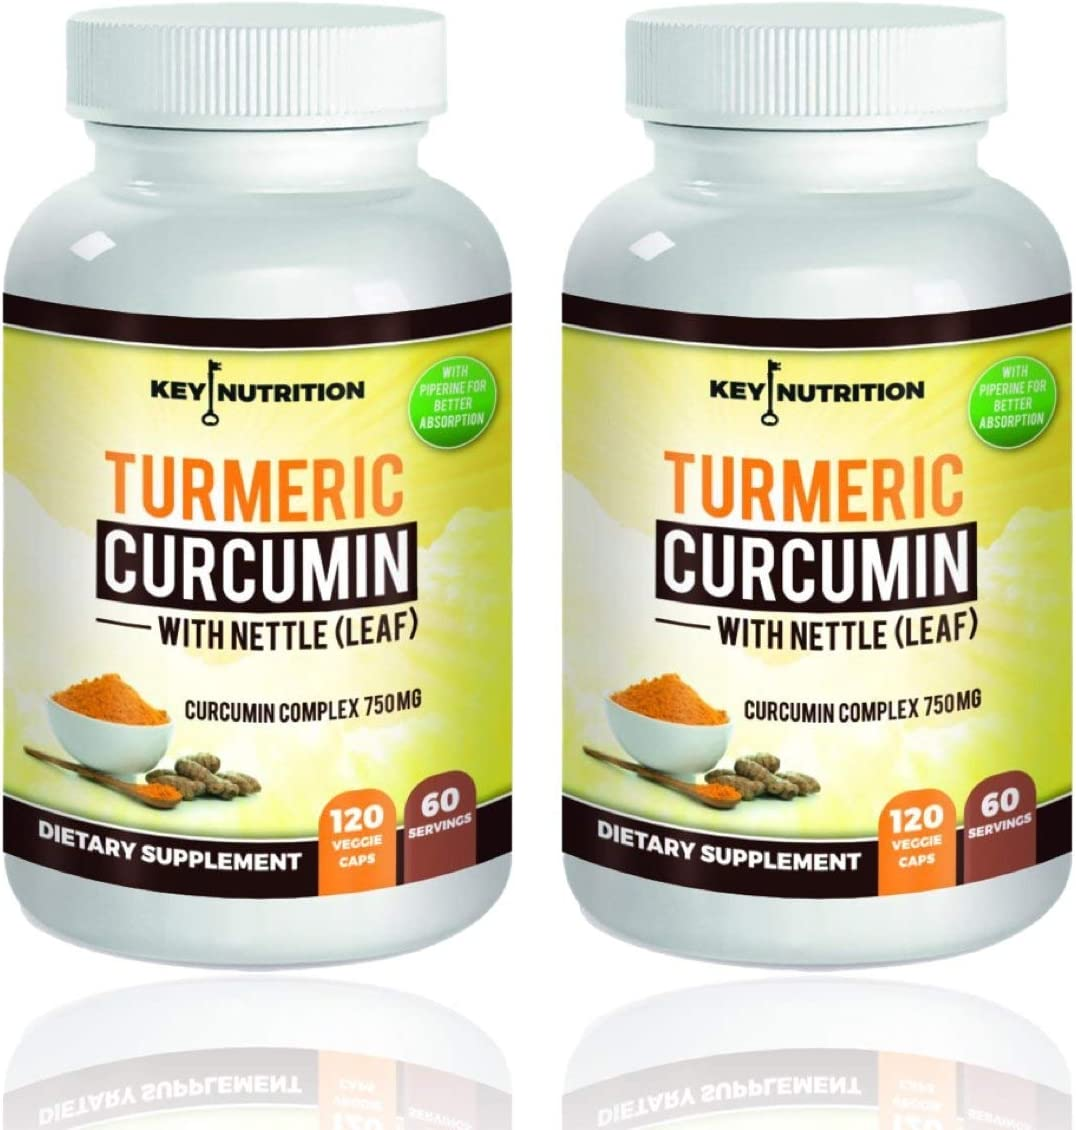 Turmeric Curcumin 1500mg 120 Veggie Capsules- with Piperine Black Pepper Extract Pack of 2 Bottles